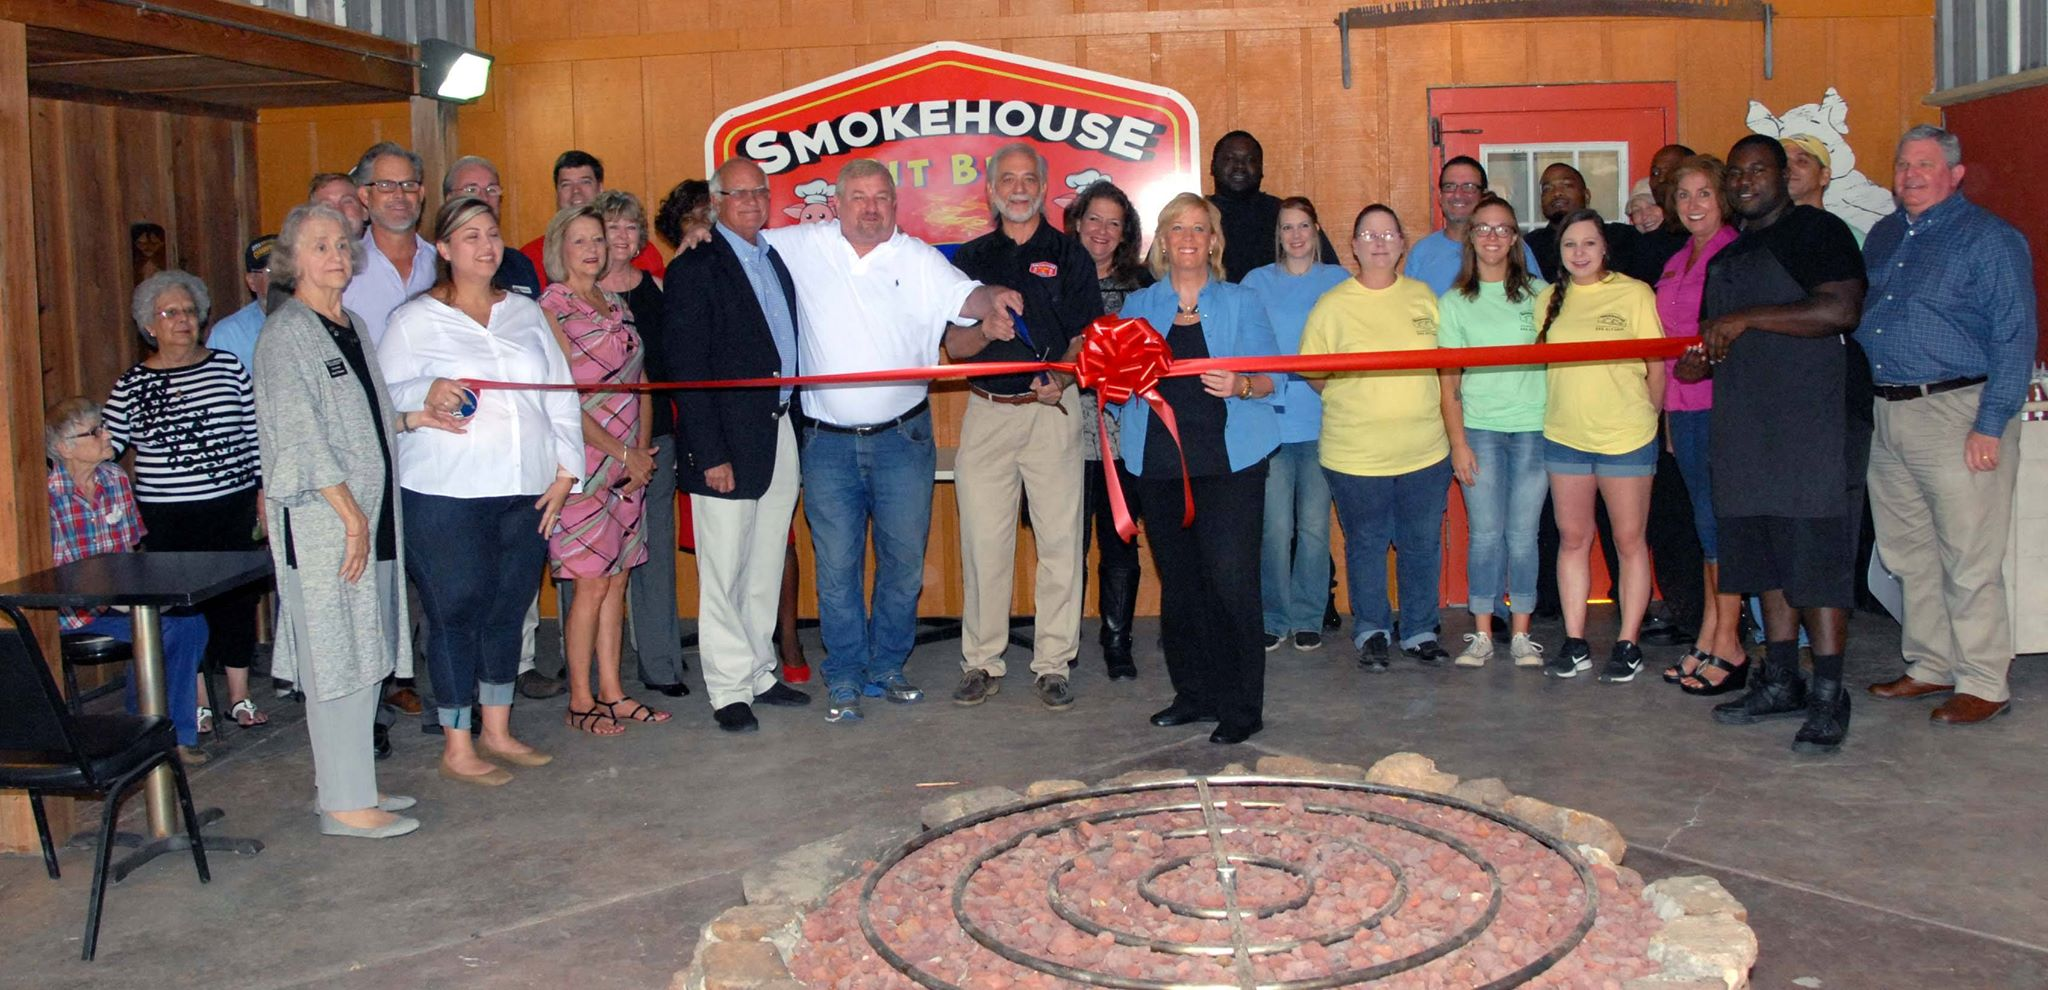 City officials and the Millbrook Area Chamber of Commerce welcomed the Smokehouse Pit Barbecue to the city Oct. 8